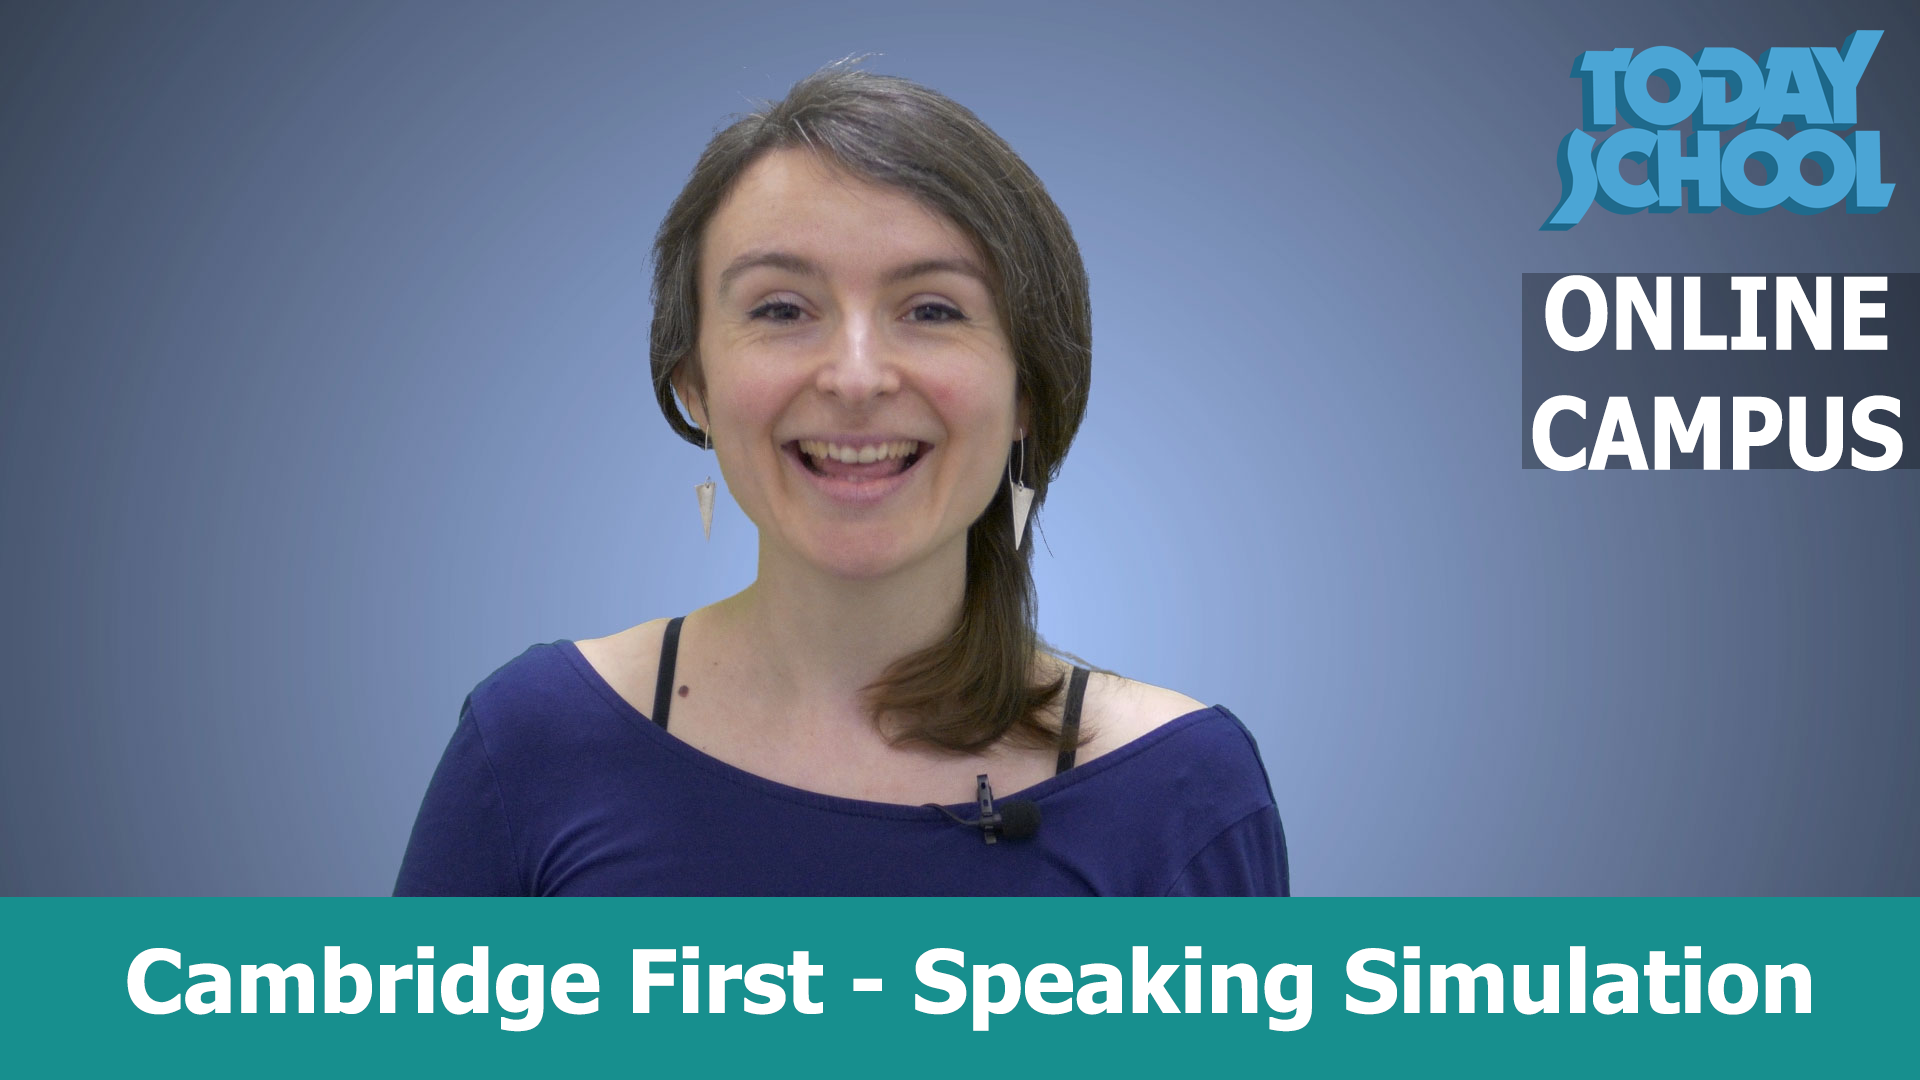 Cambridge First speaking simulation. Today School online campus.